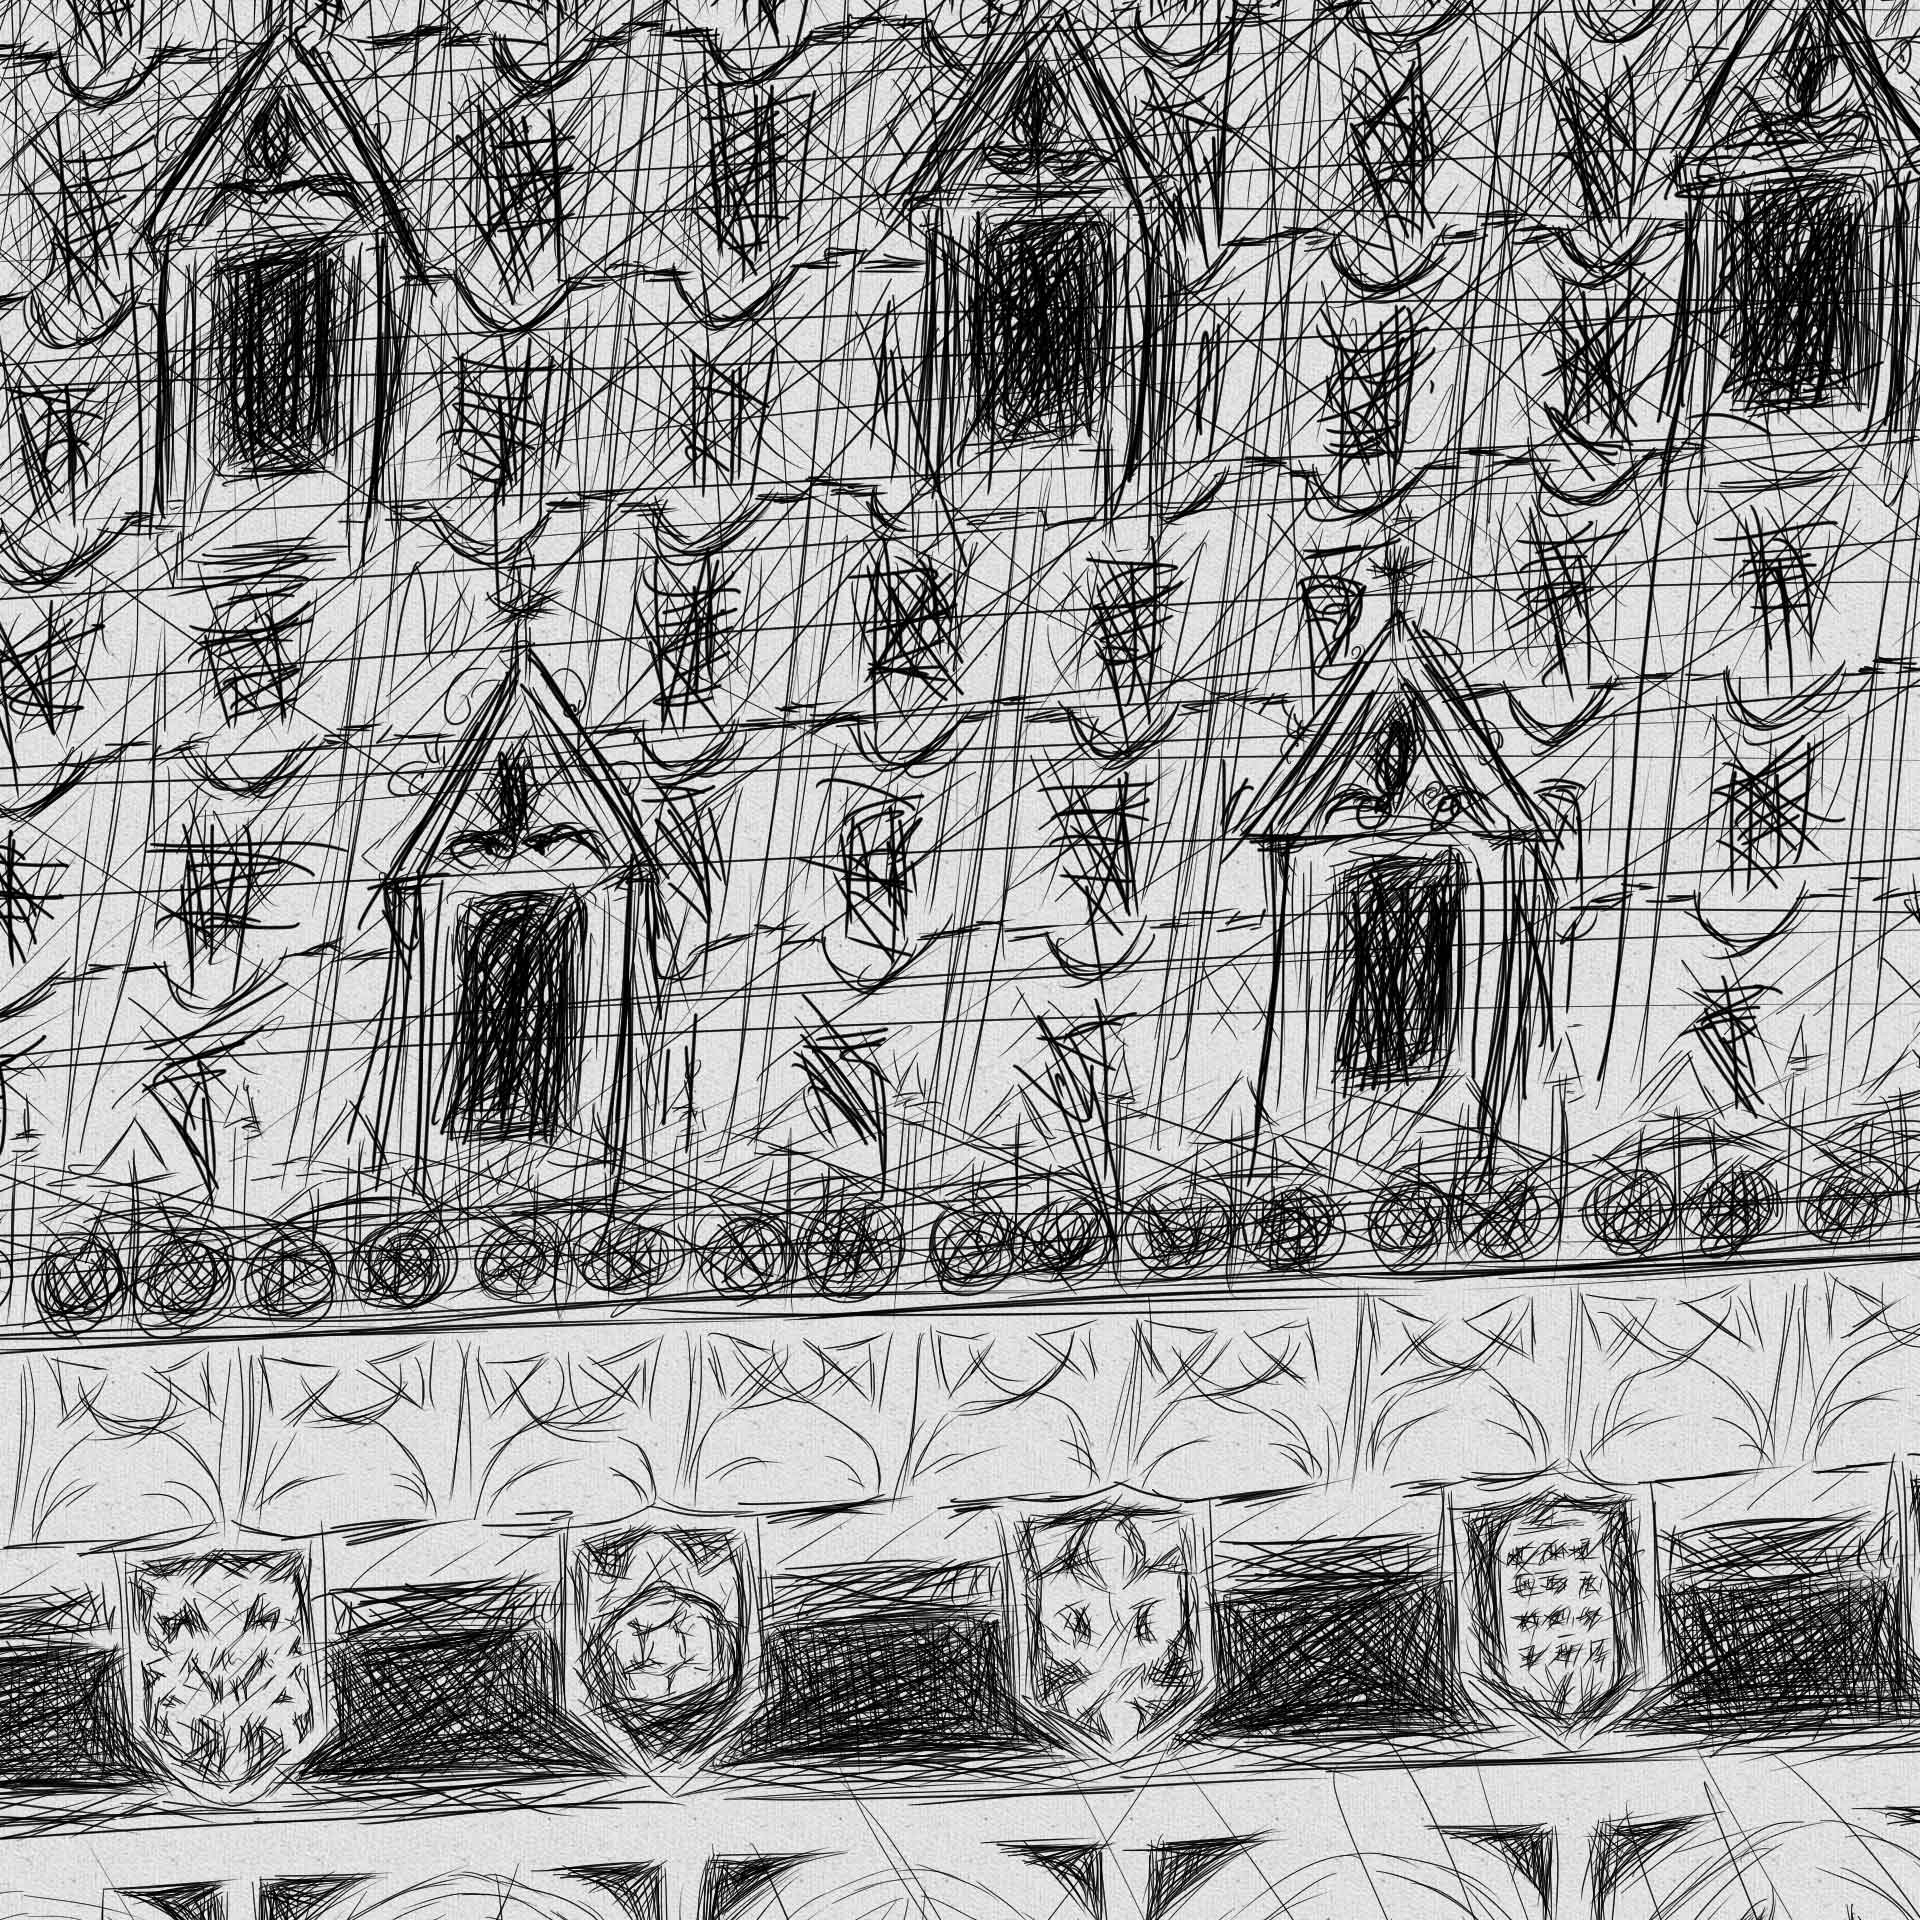 Big Ben pencil line illustration יור בעיפרון קווי ביג בן לונדון closeup4